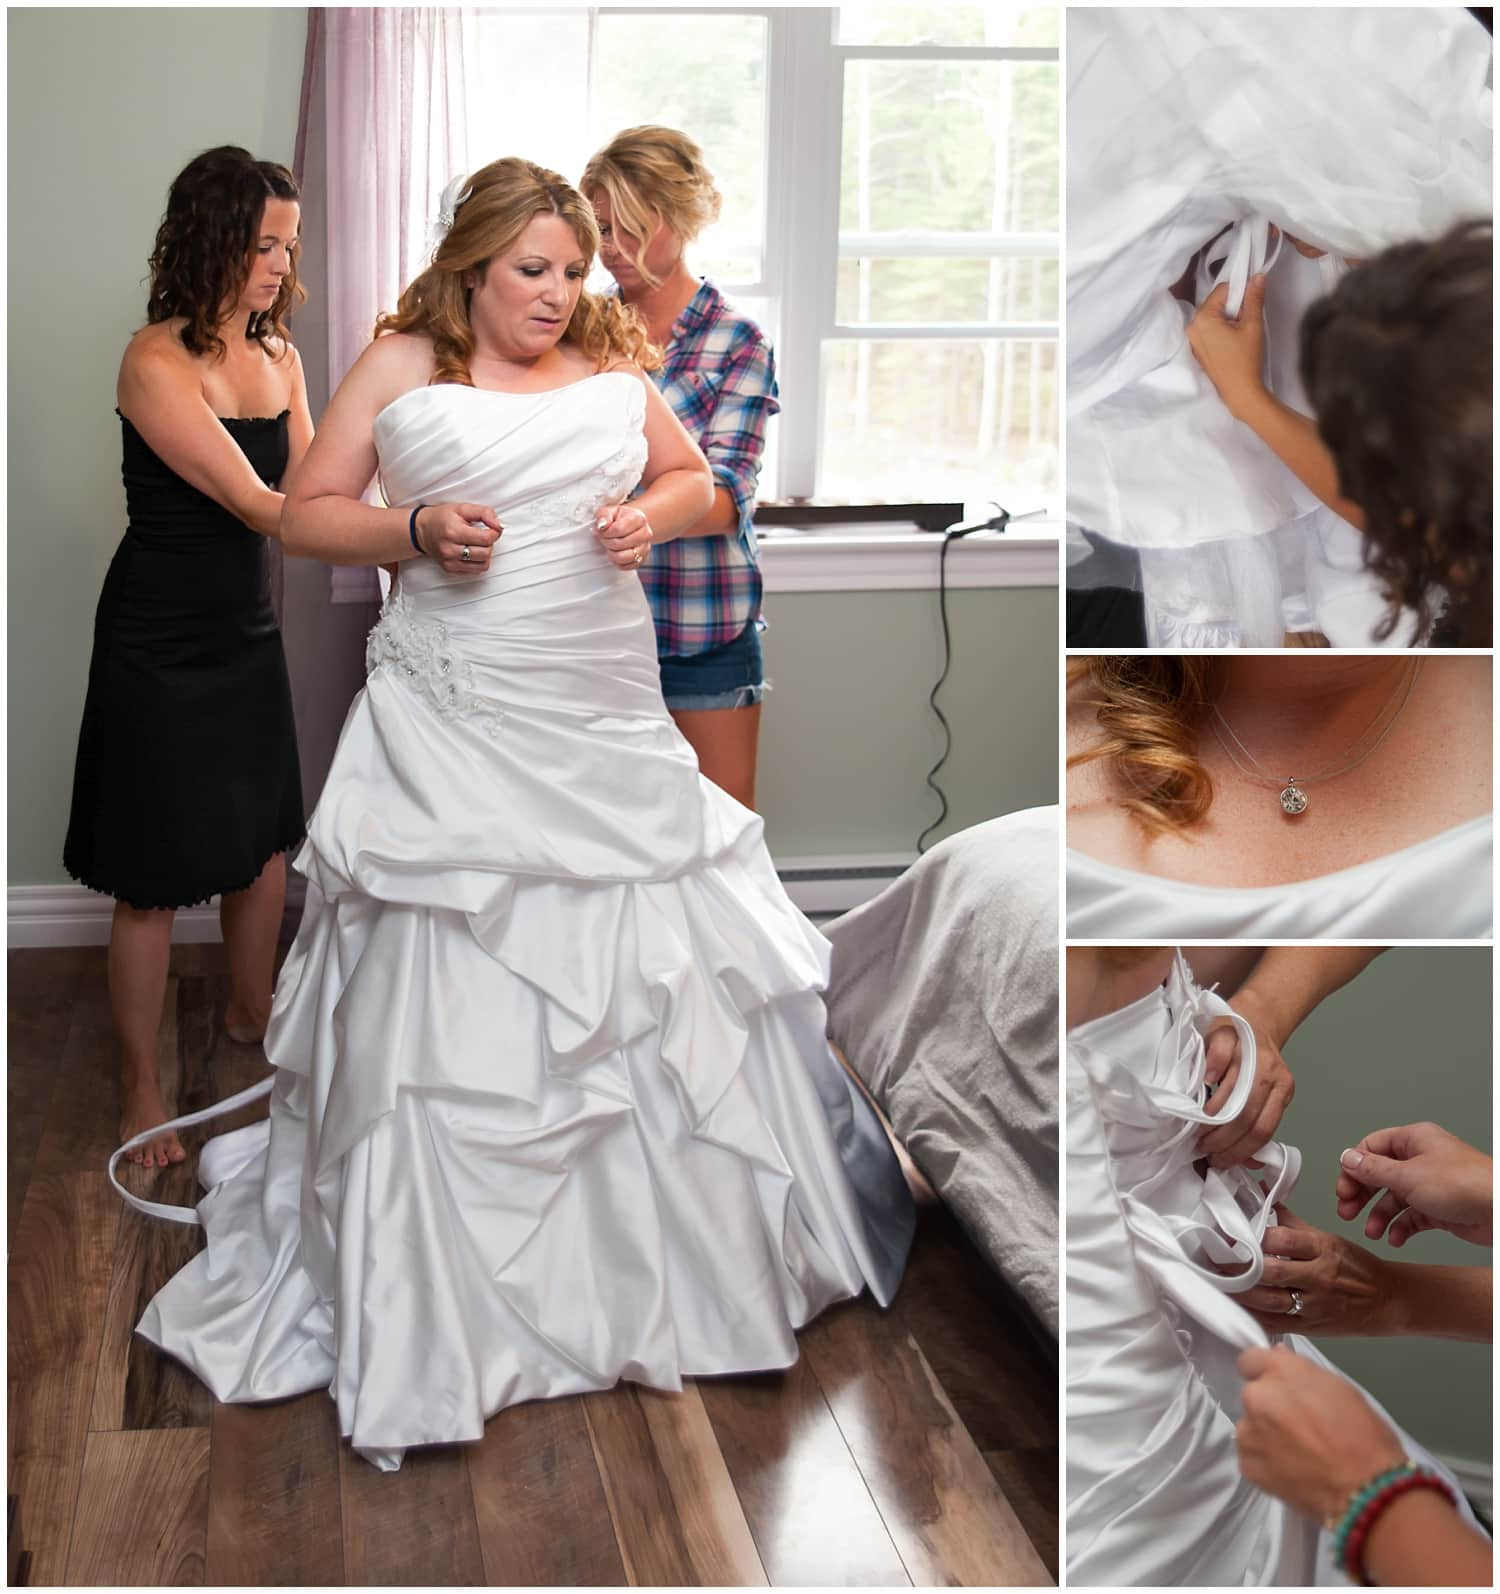 The bride getting ready during bridal prep for her Halifax NS wedding.